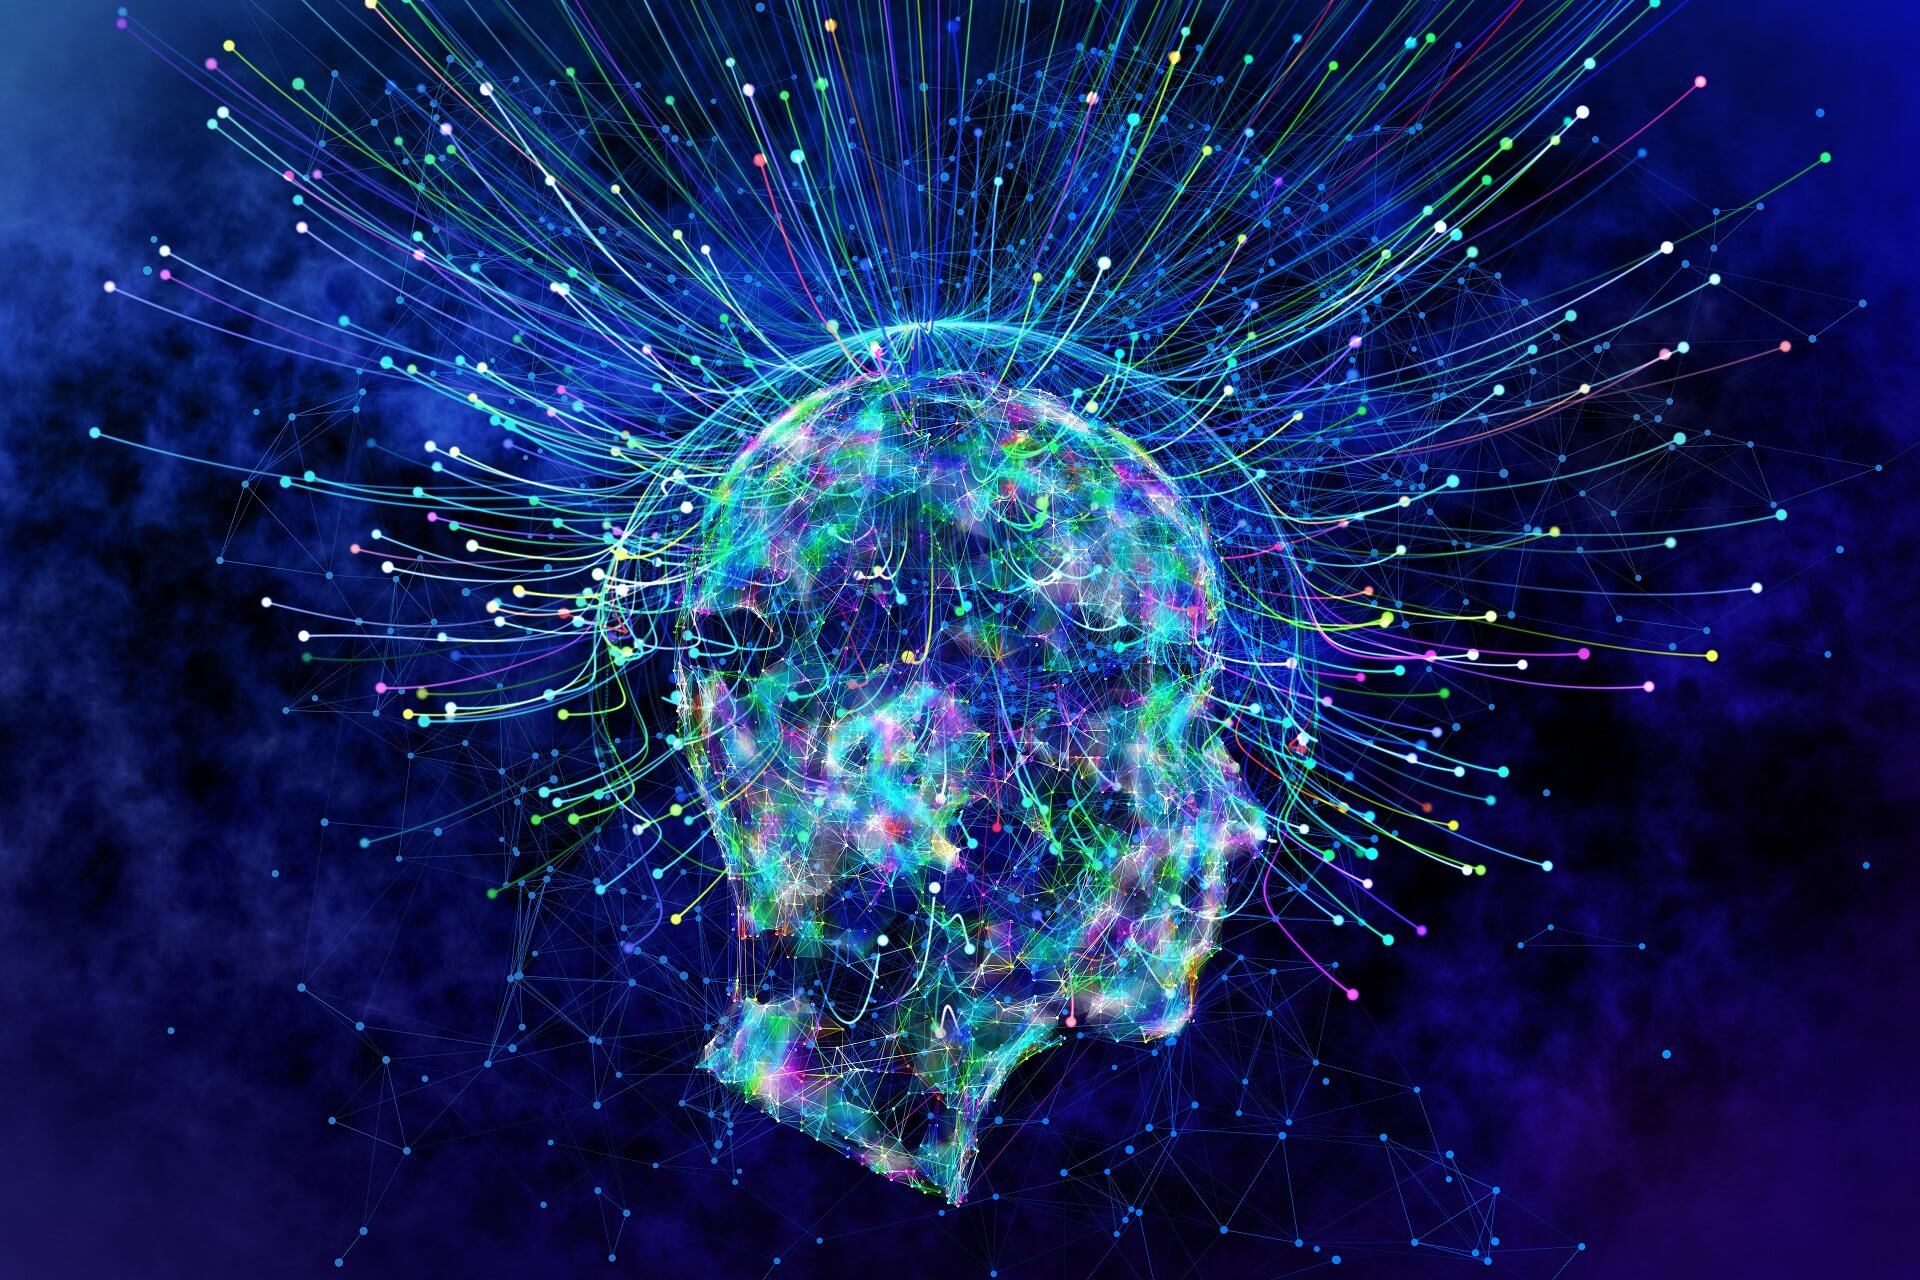 light emanating from a person's brain